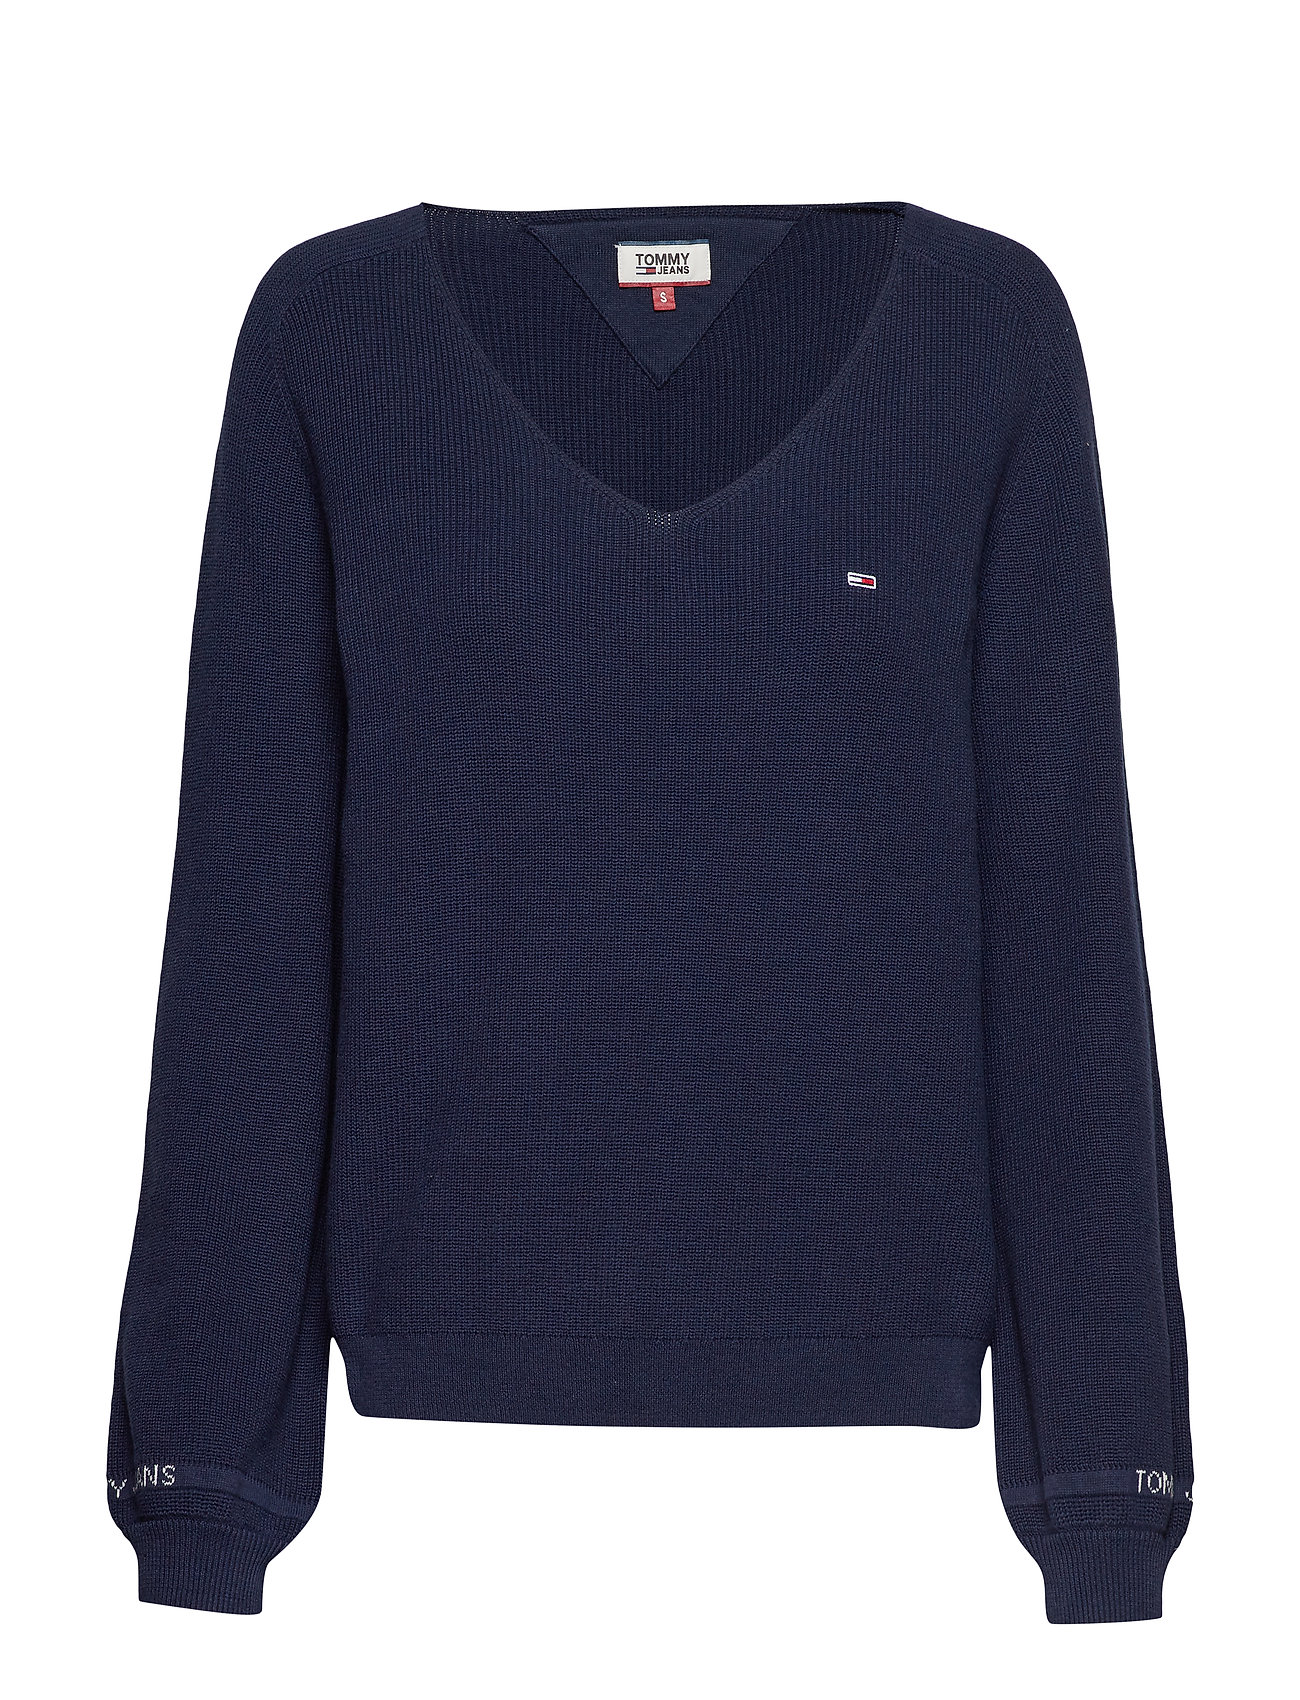 Tommy Jeans TJW SLEEVE DETAIL SW - BLACK IRIS